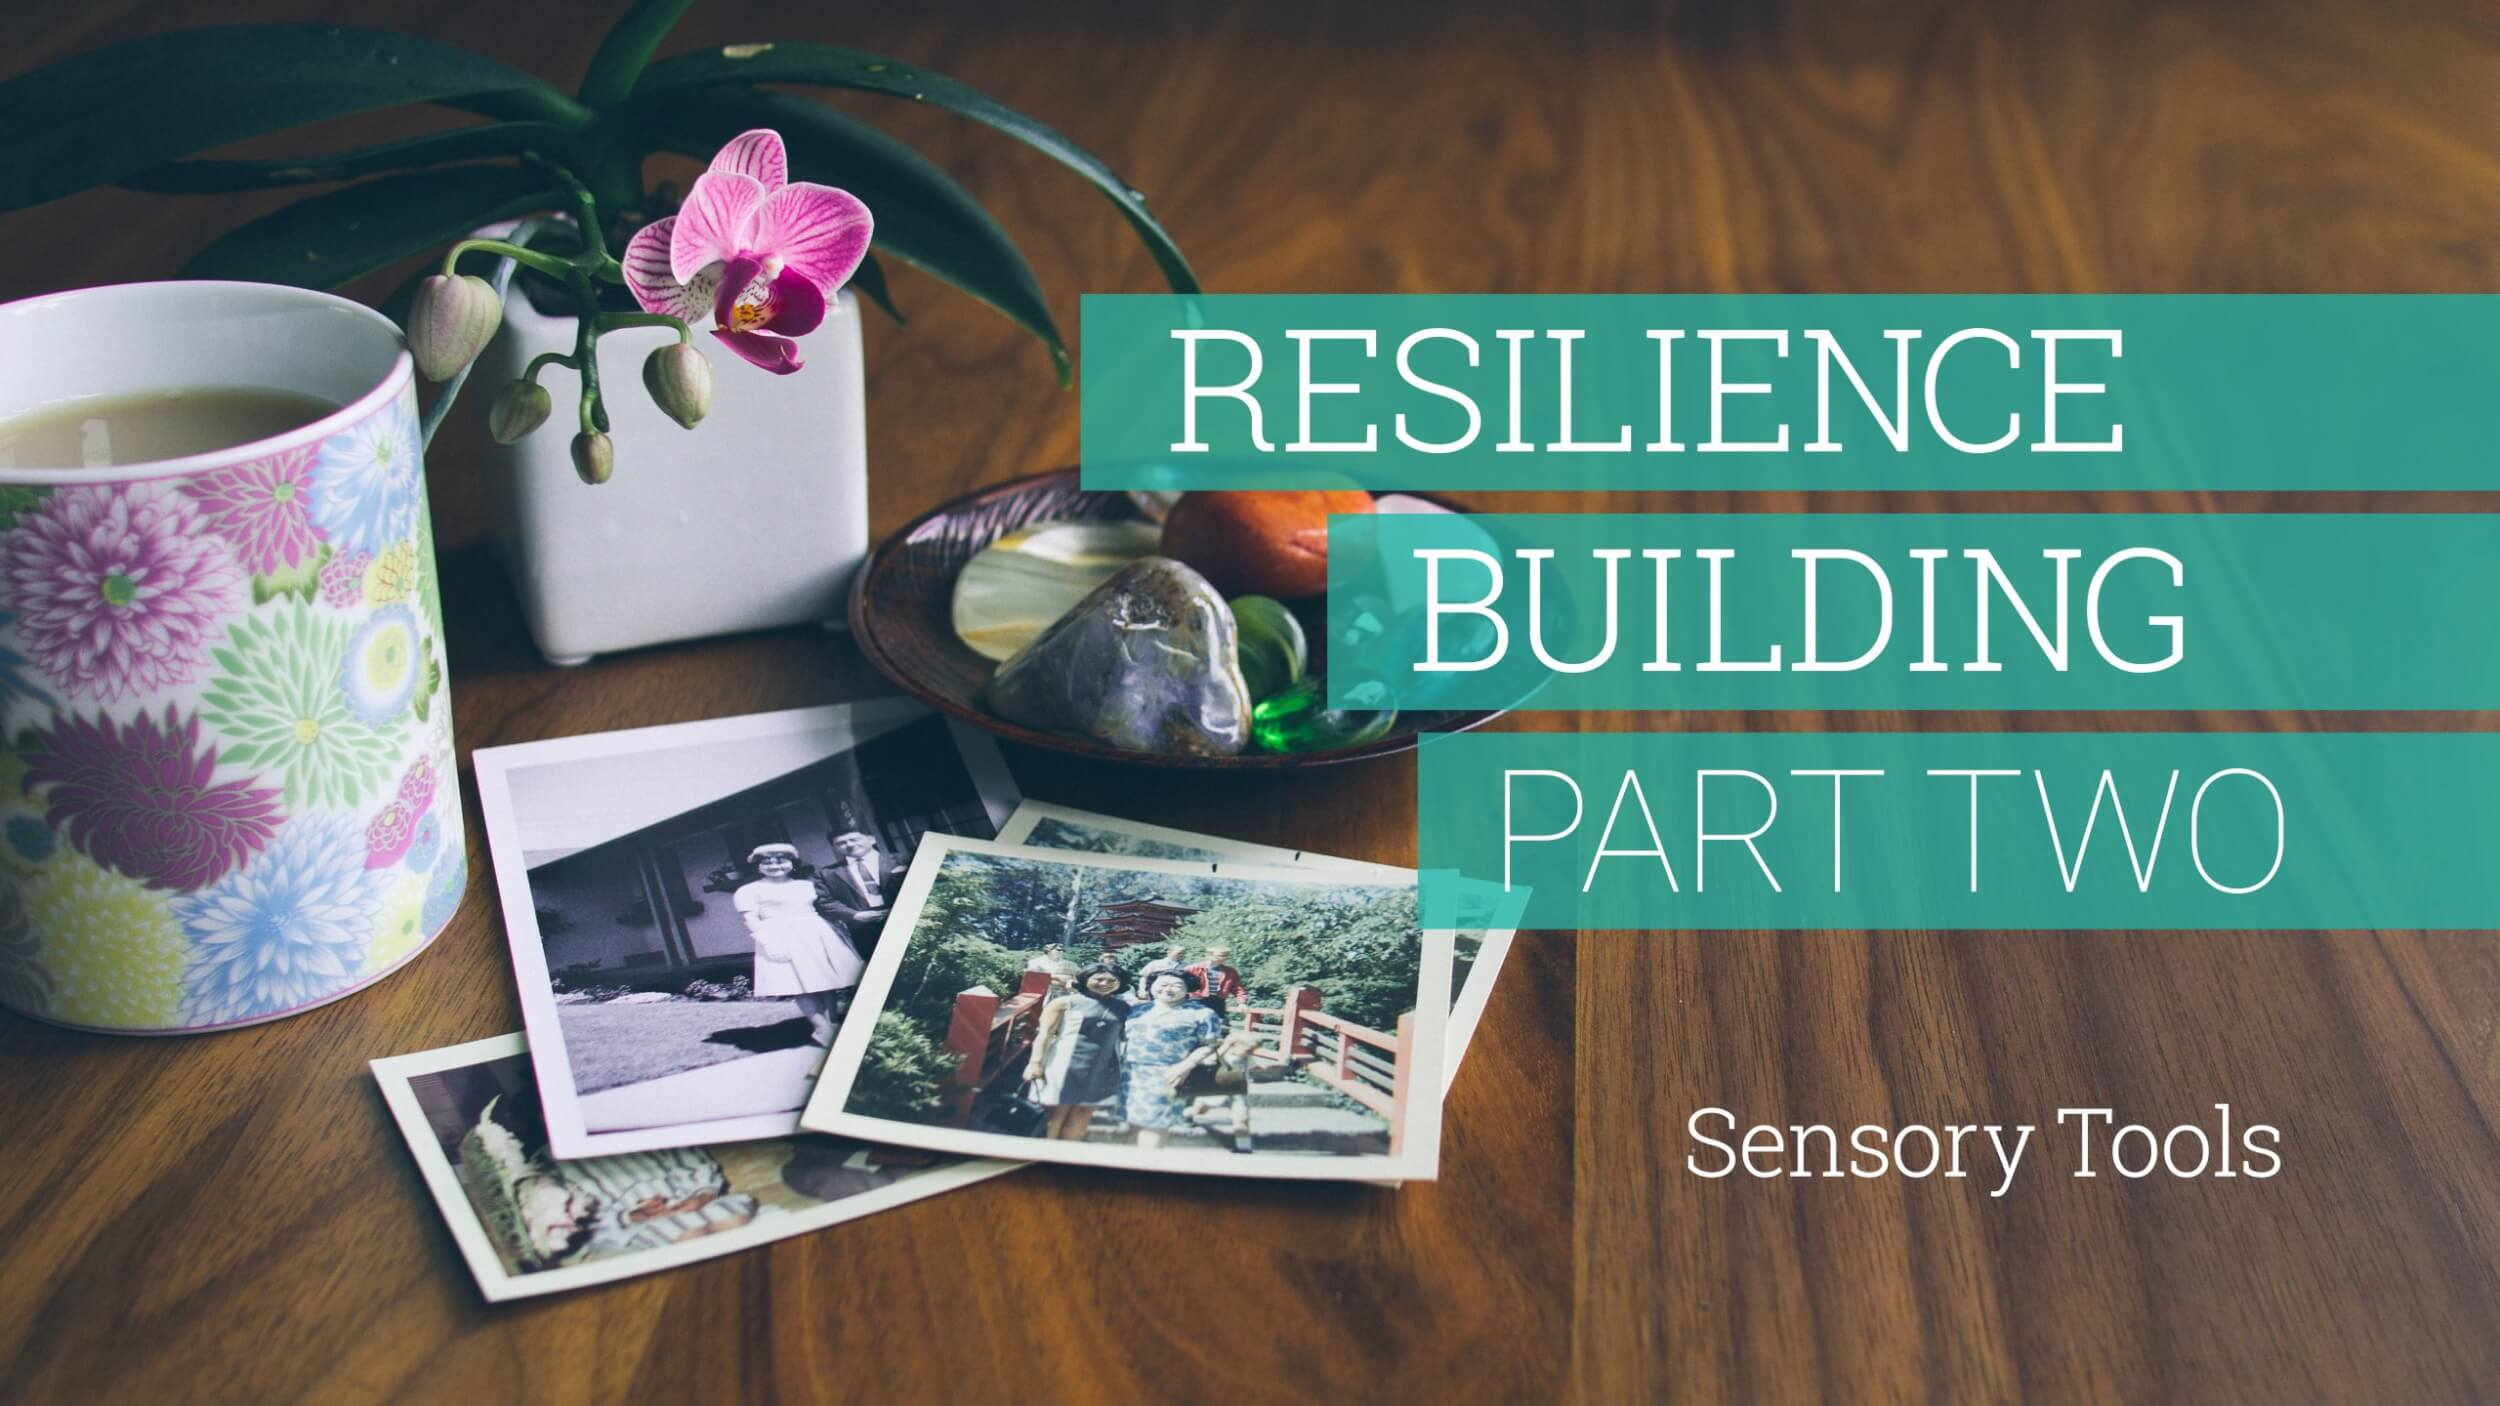 Resilience-Building Part 02